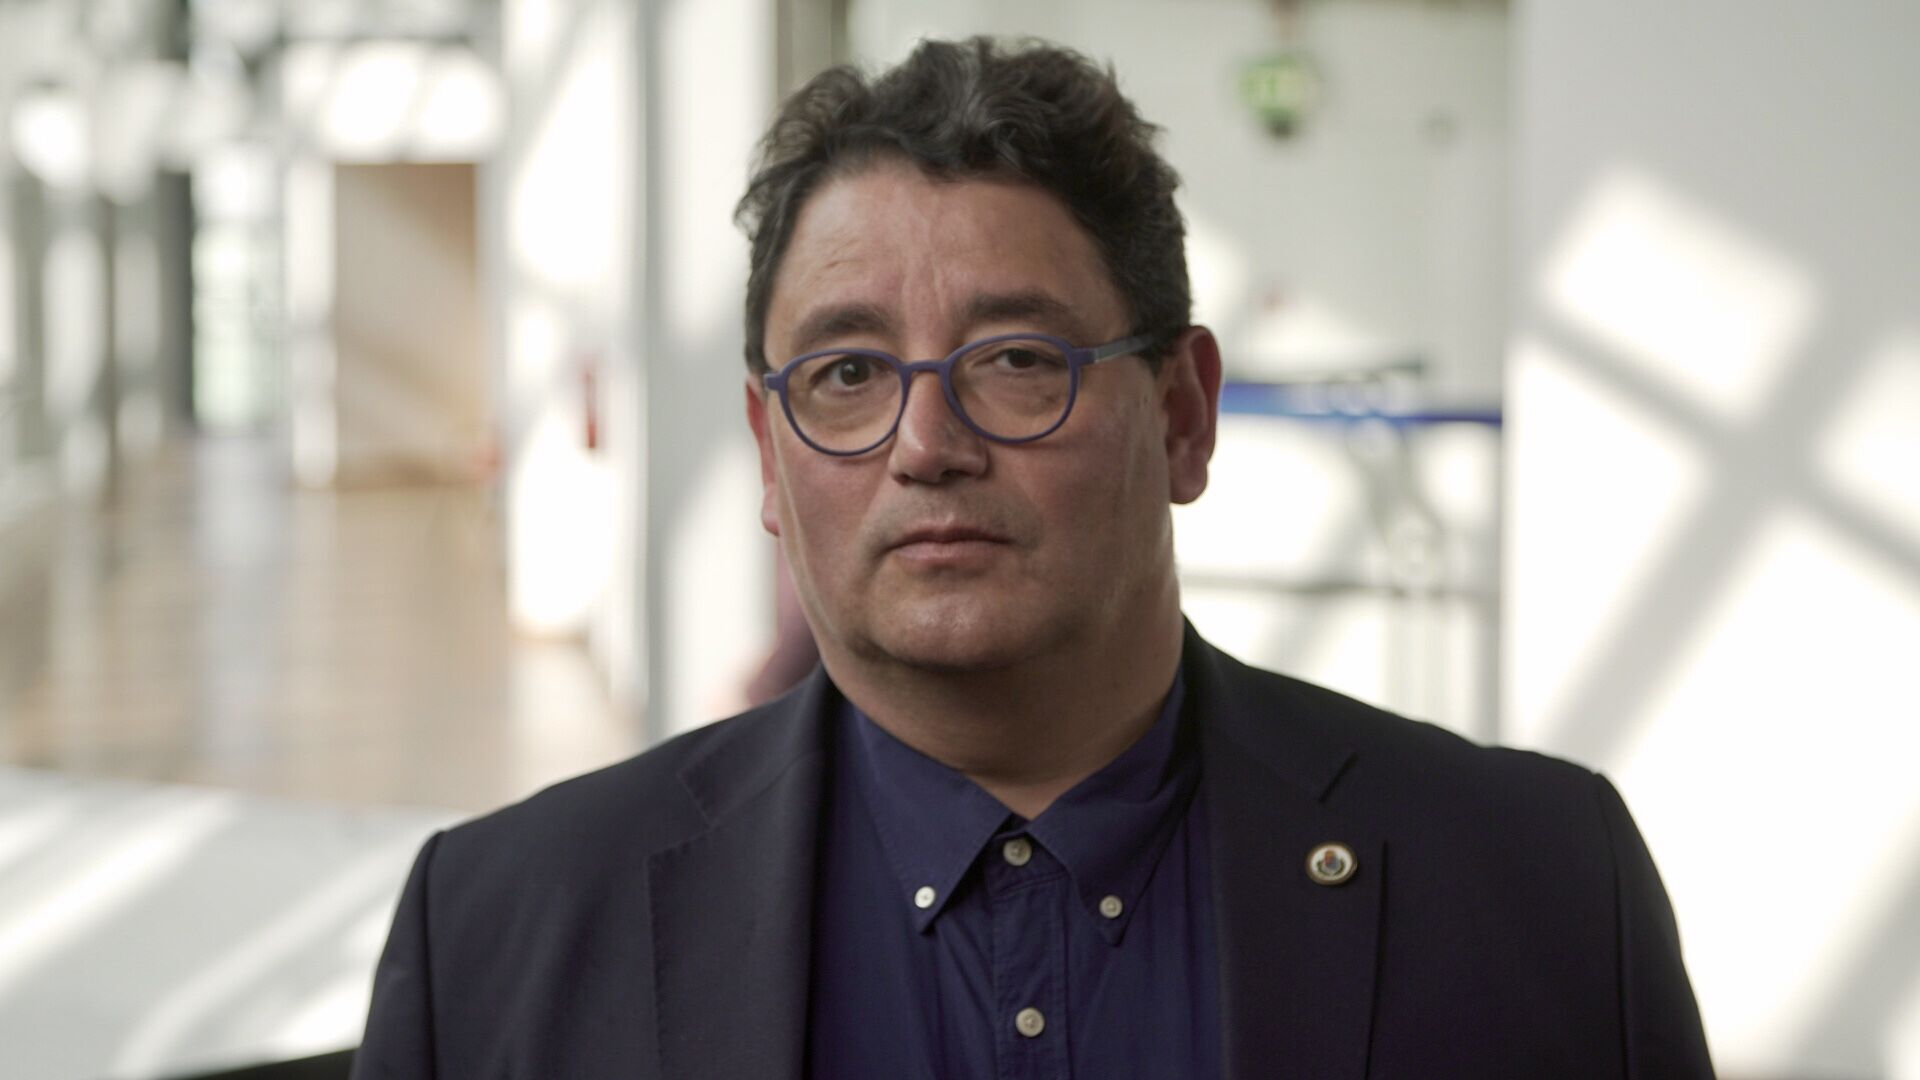 Béla Merkely, EHRA 2019 – Cardiac Implantable Electronic Devices